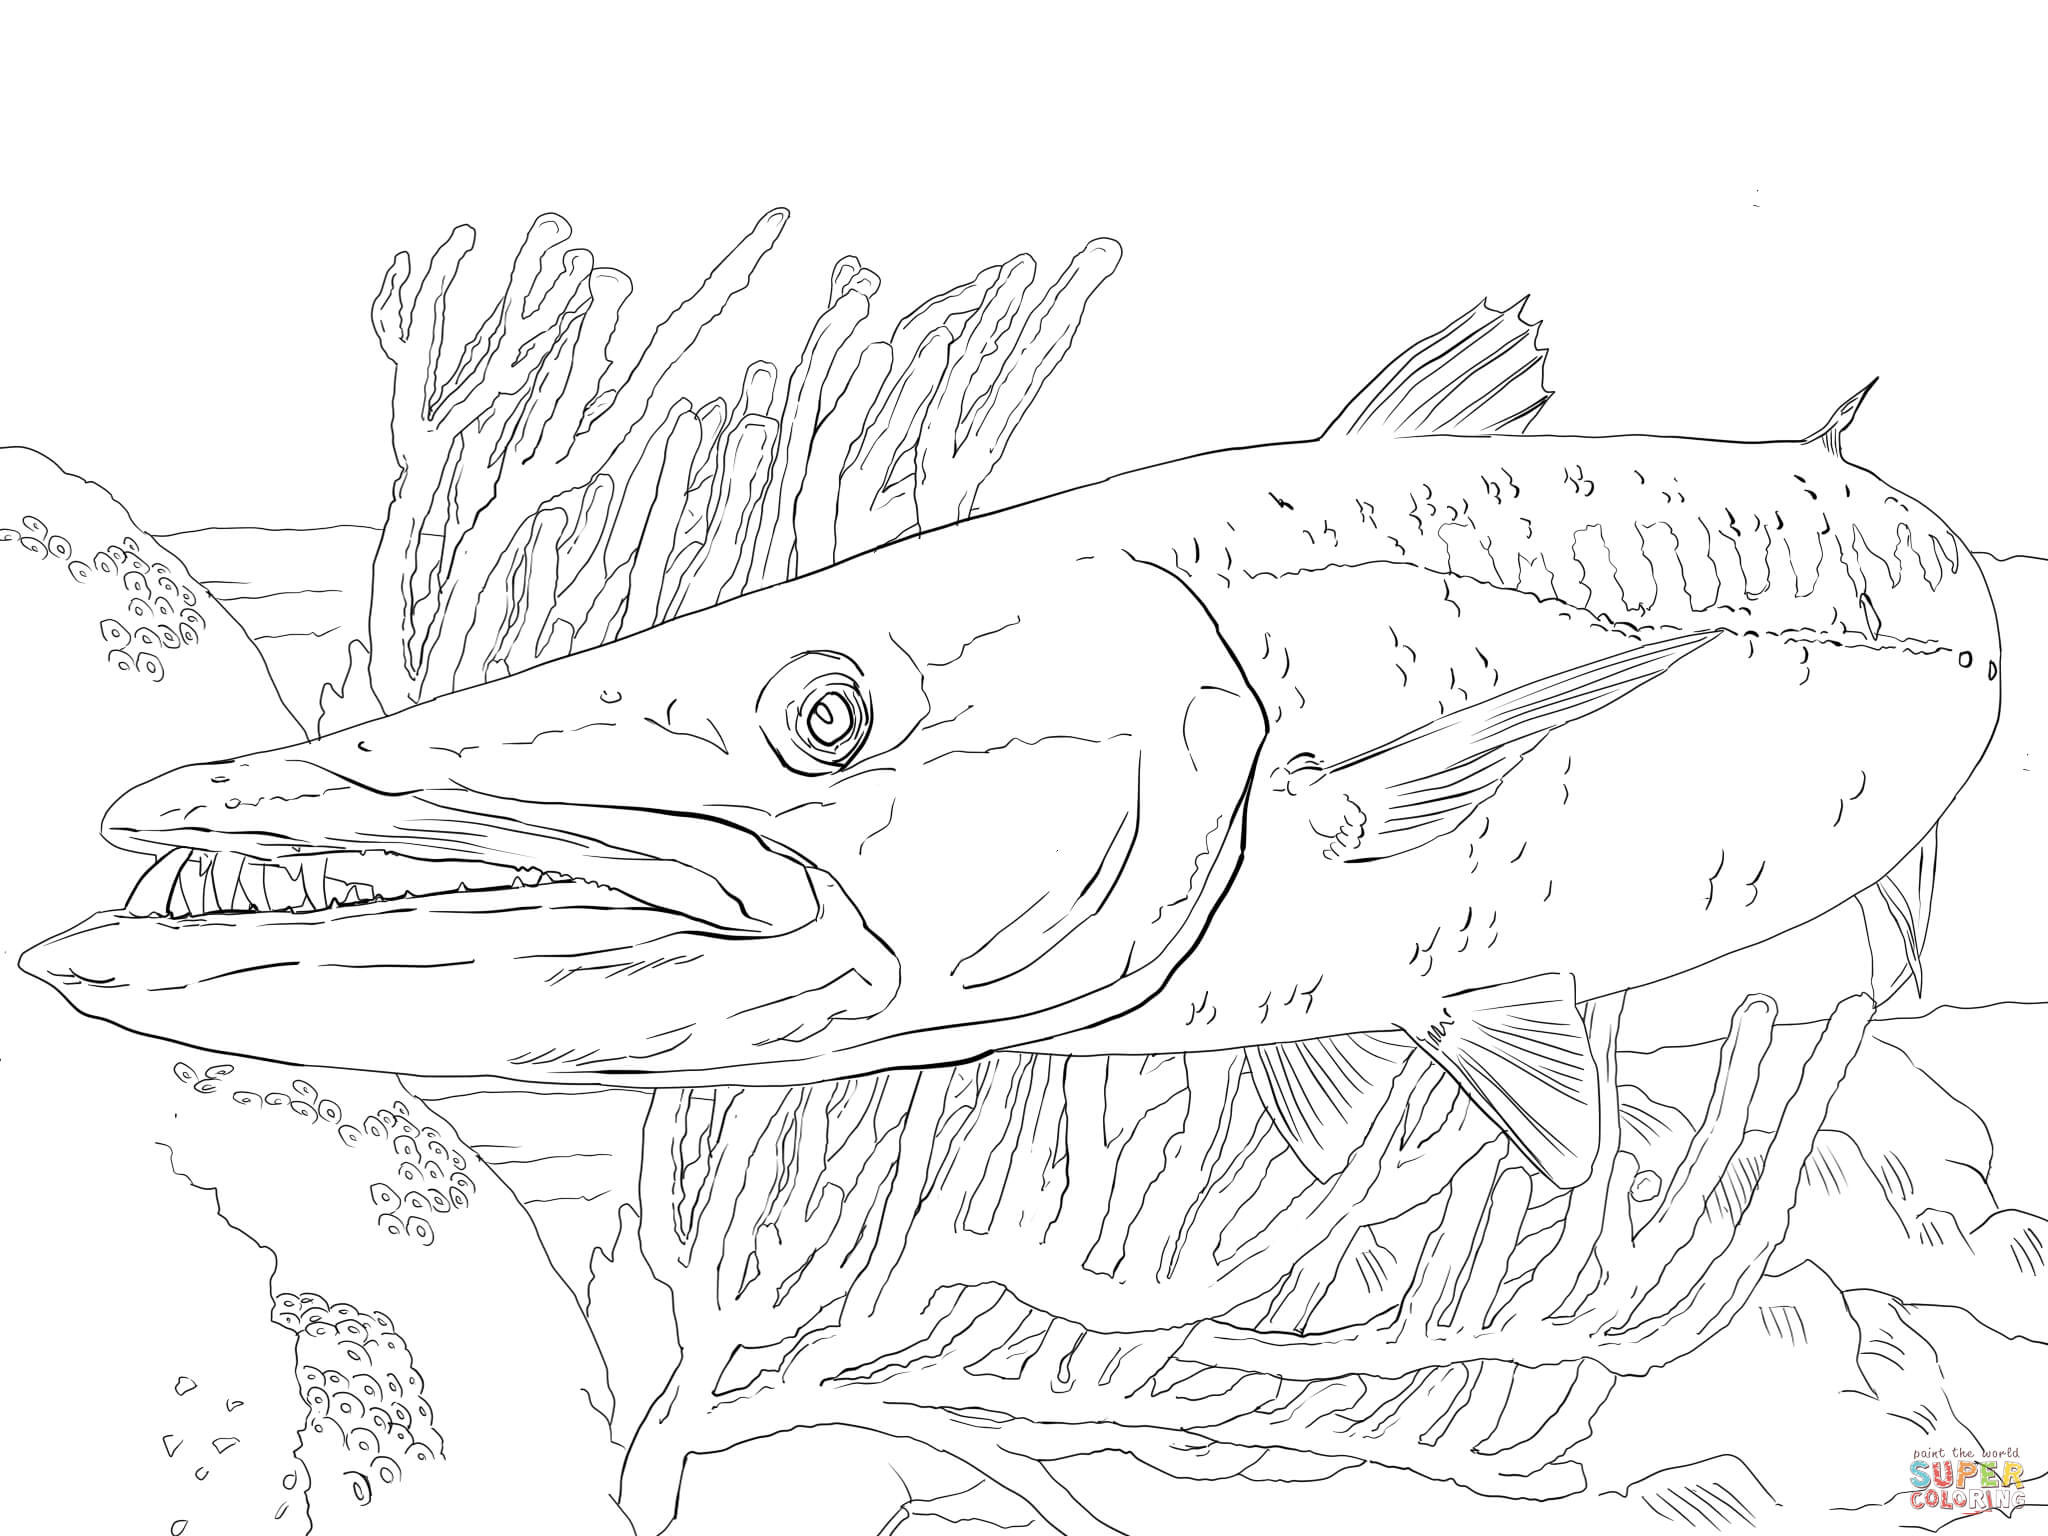 Best ideas about Fishing Printable Coloring Pages . Save or Pin Barracuda Fish coloring page Now.